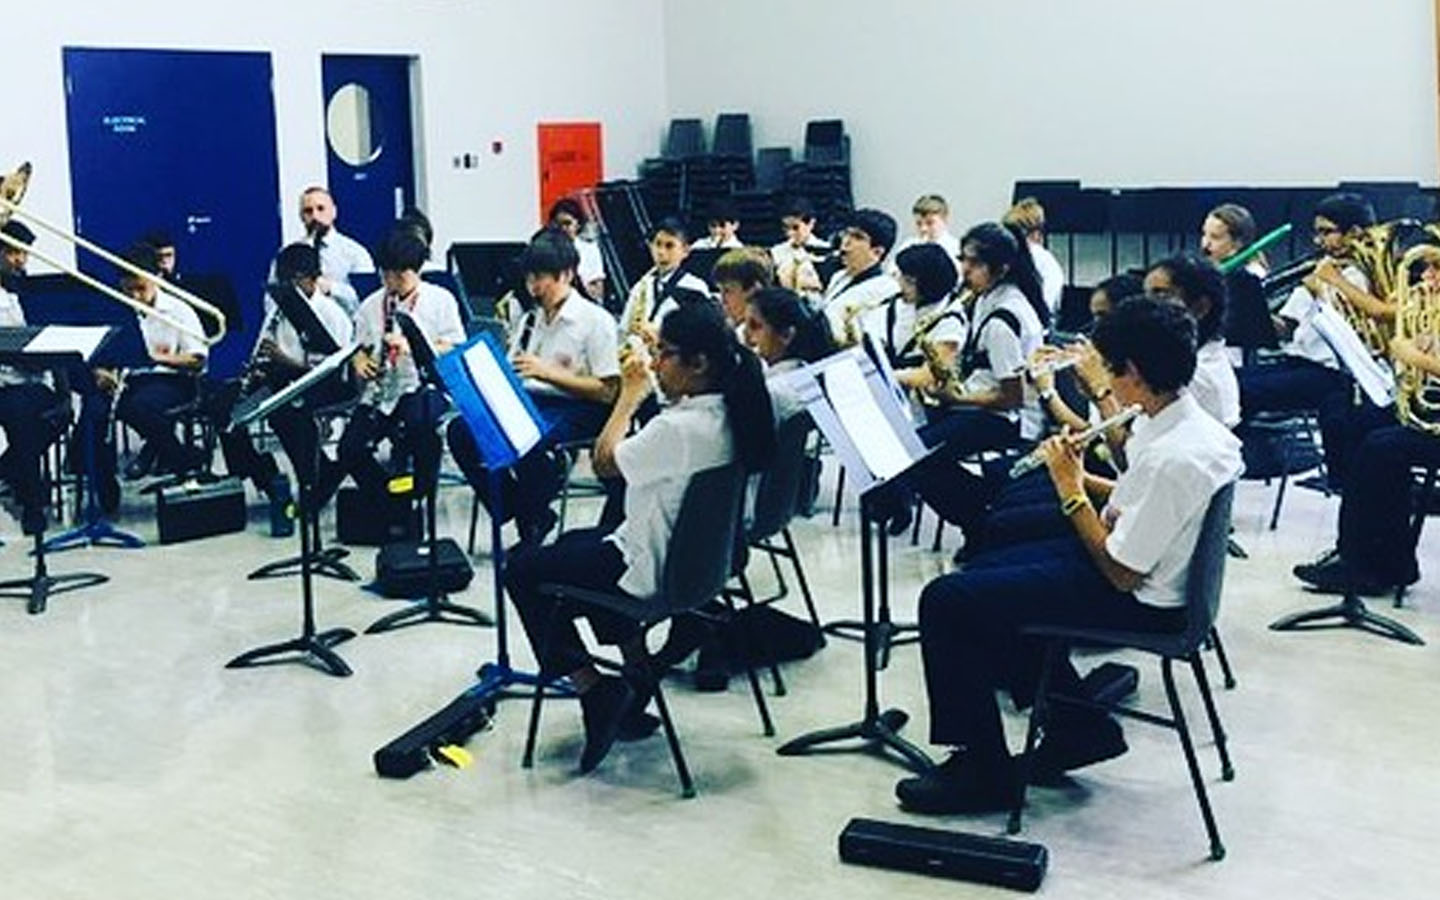 Students of Dubai College playing musical instruments